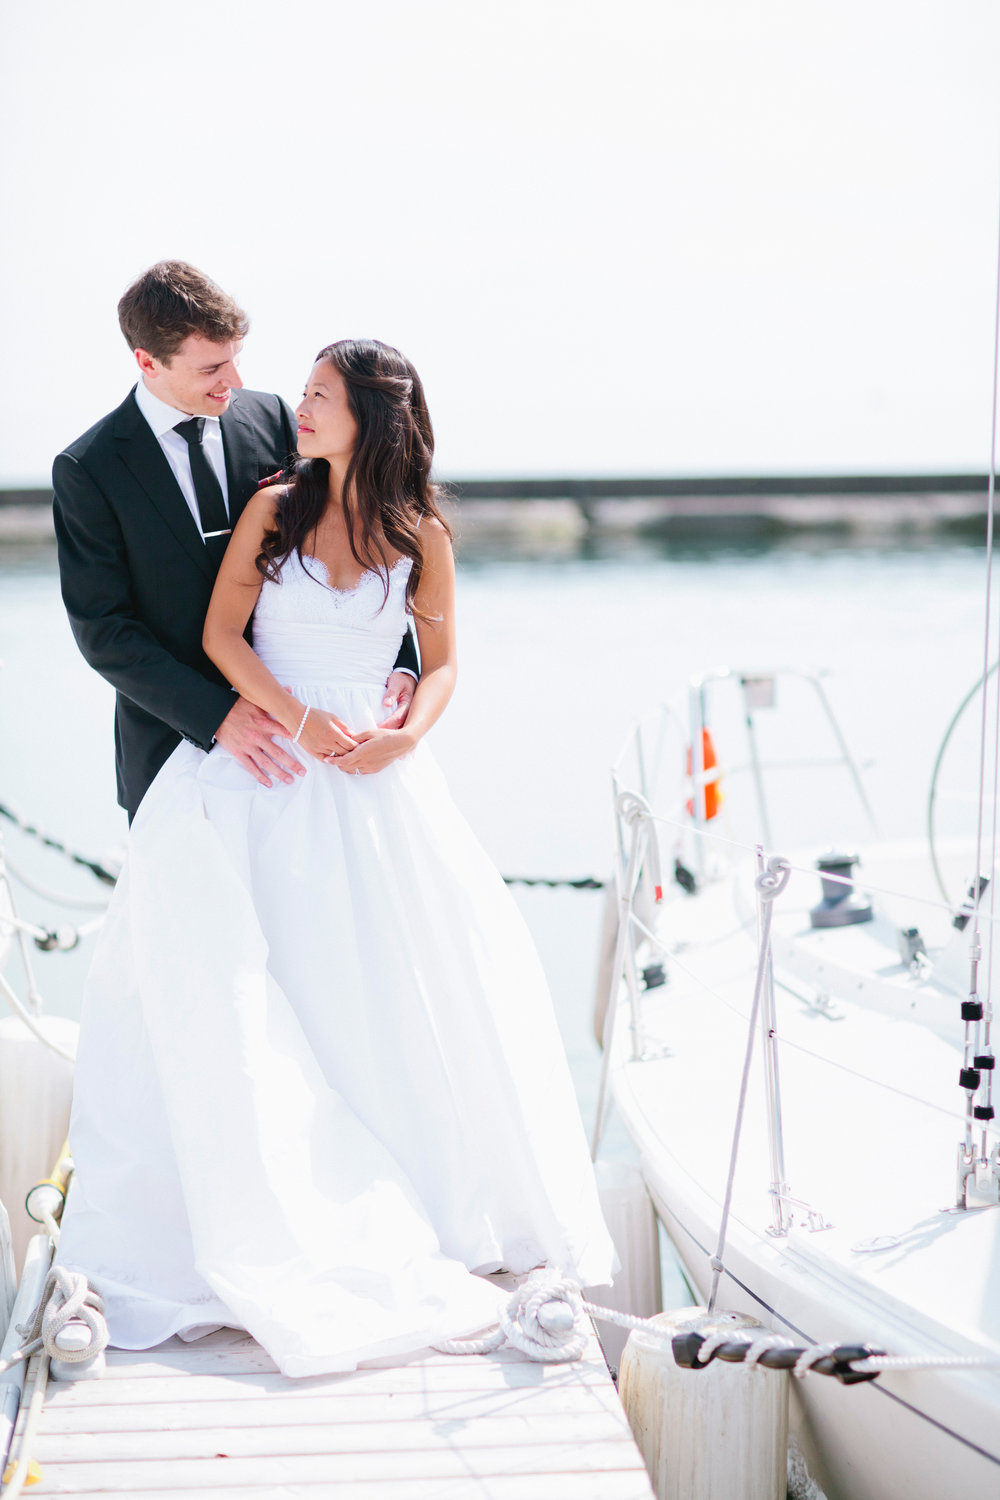 Image of a bride and groom on their wedding day.  They are on a dock at a marina, gazing at each other.  The bride has an Amsale gown.